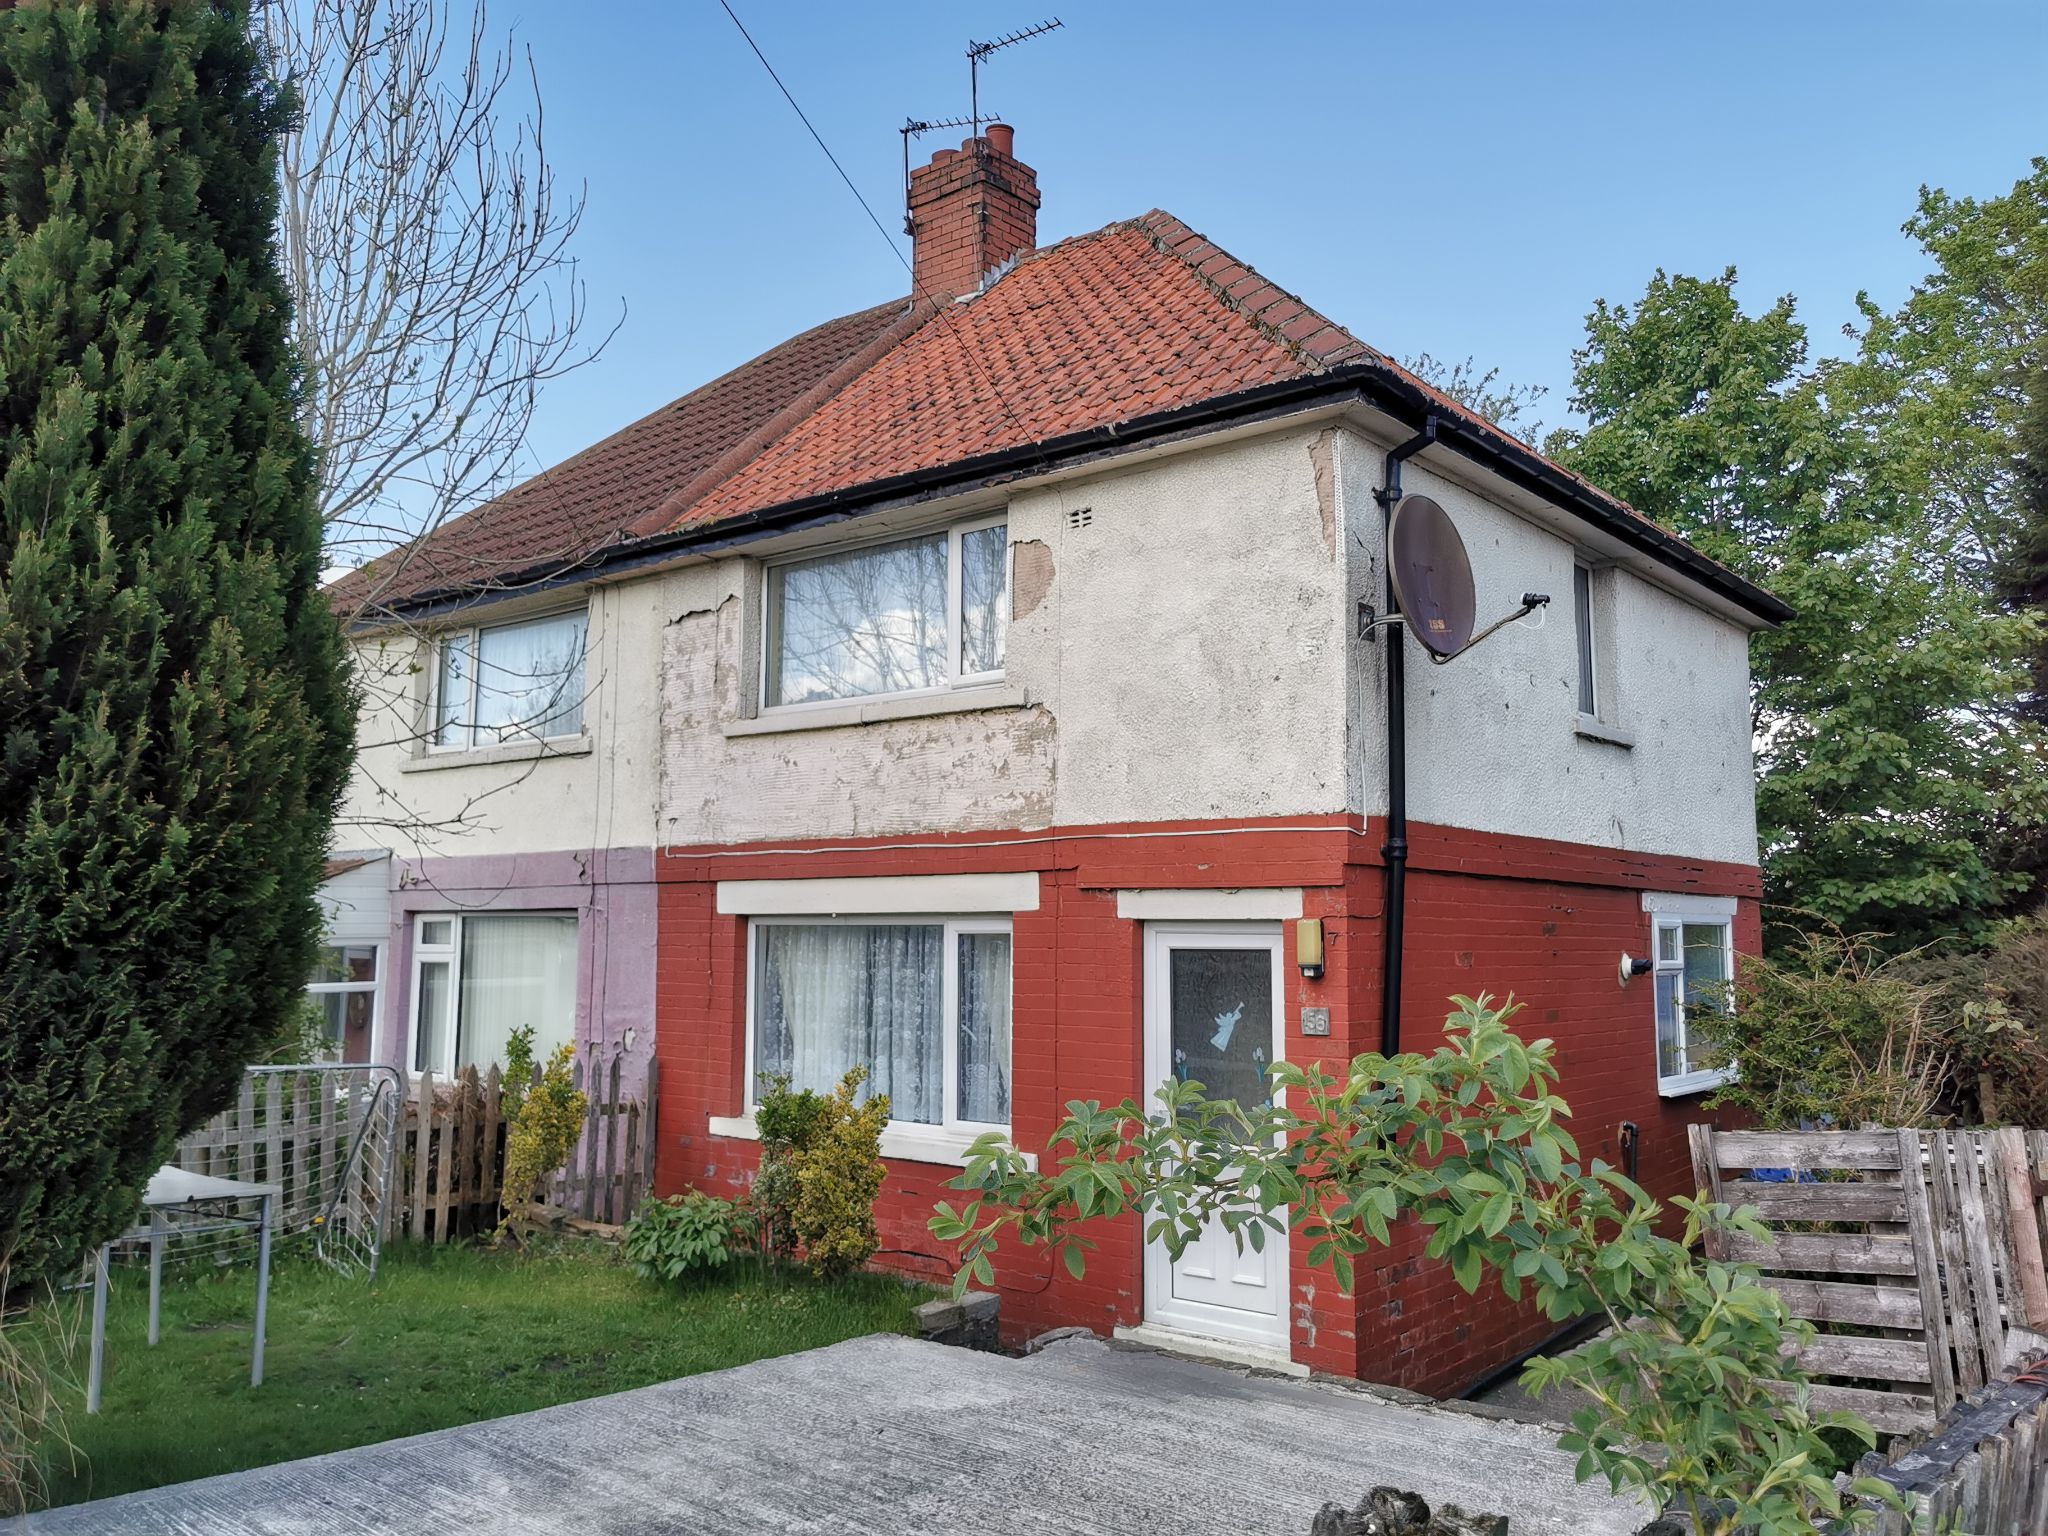 2 bedroom semi-detached house For Sale in Bradford - Photograph 1.